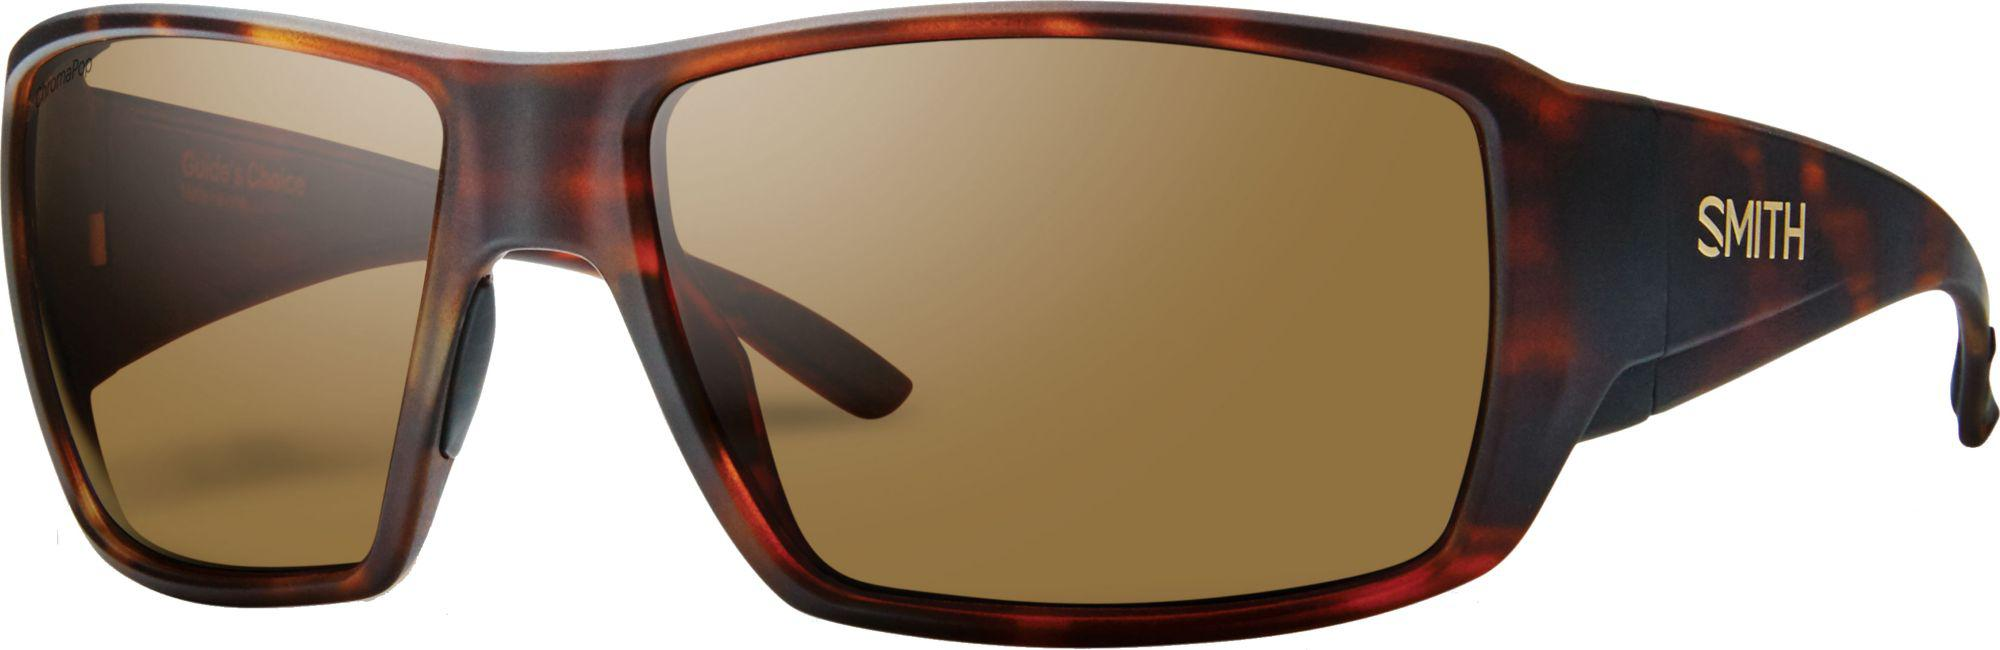 771fafbc78246 Lyst - Smith Optics Guide s Choice Polarized Sunglasses in Brown for Men